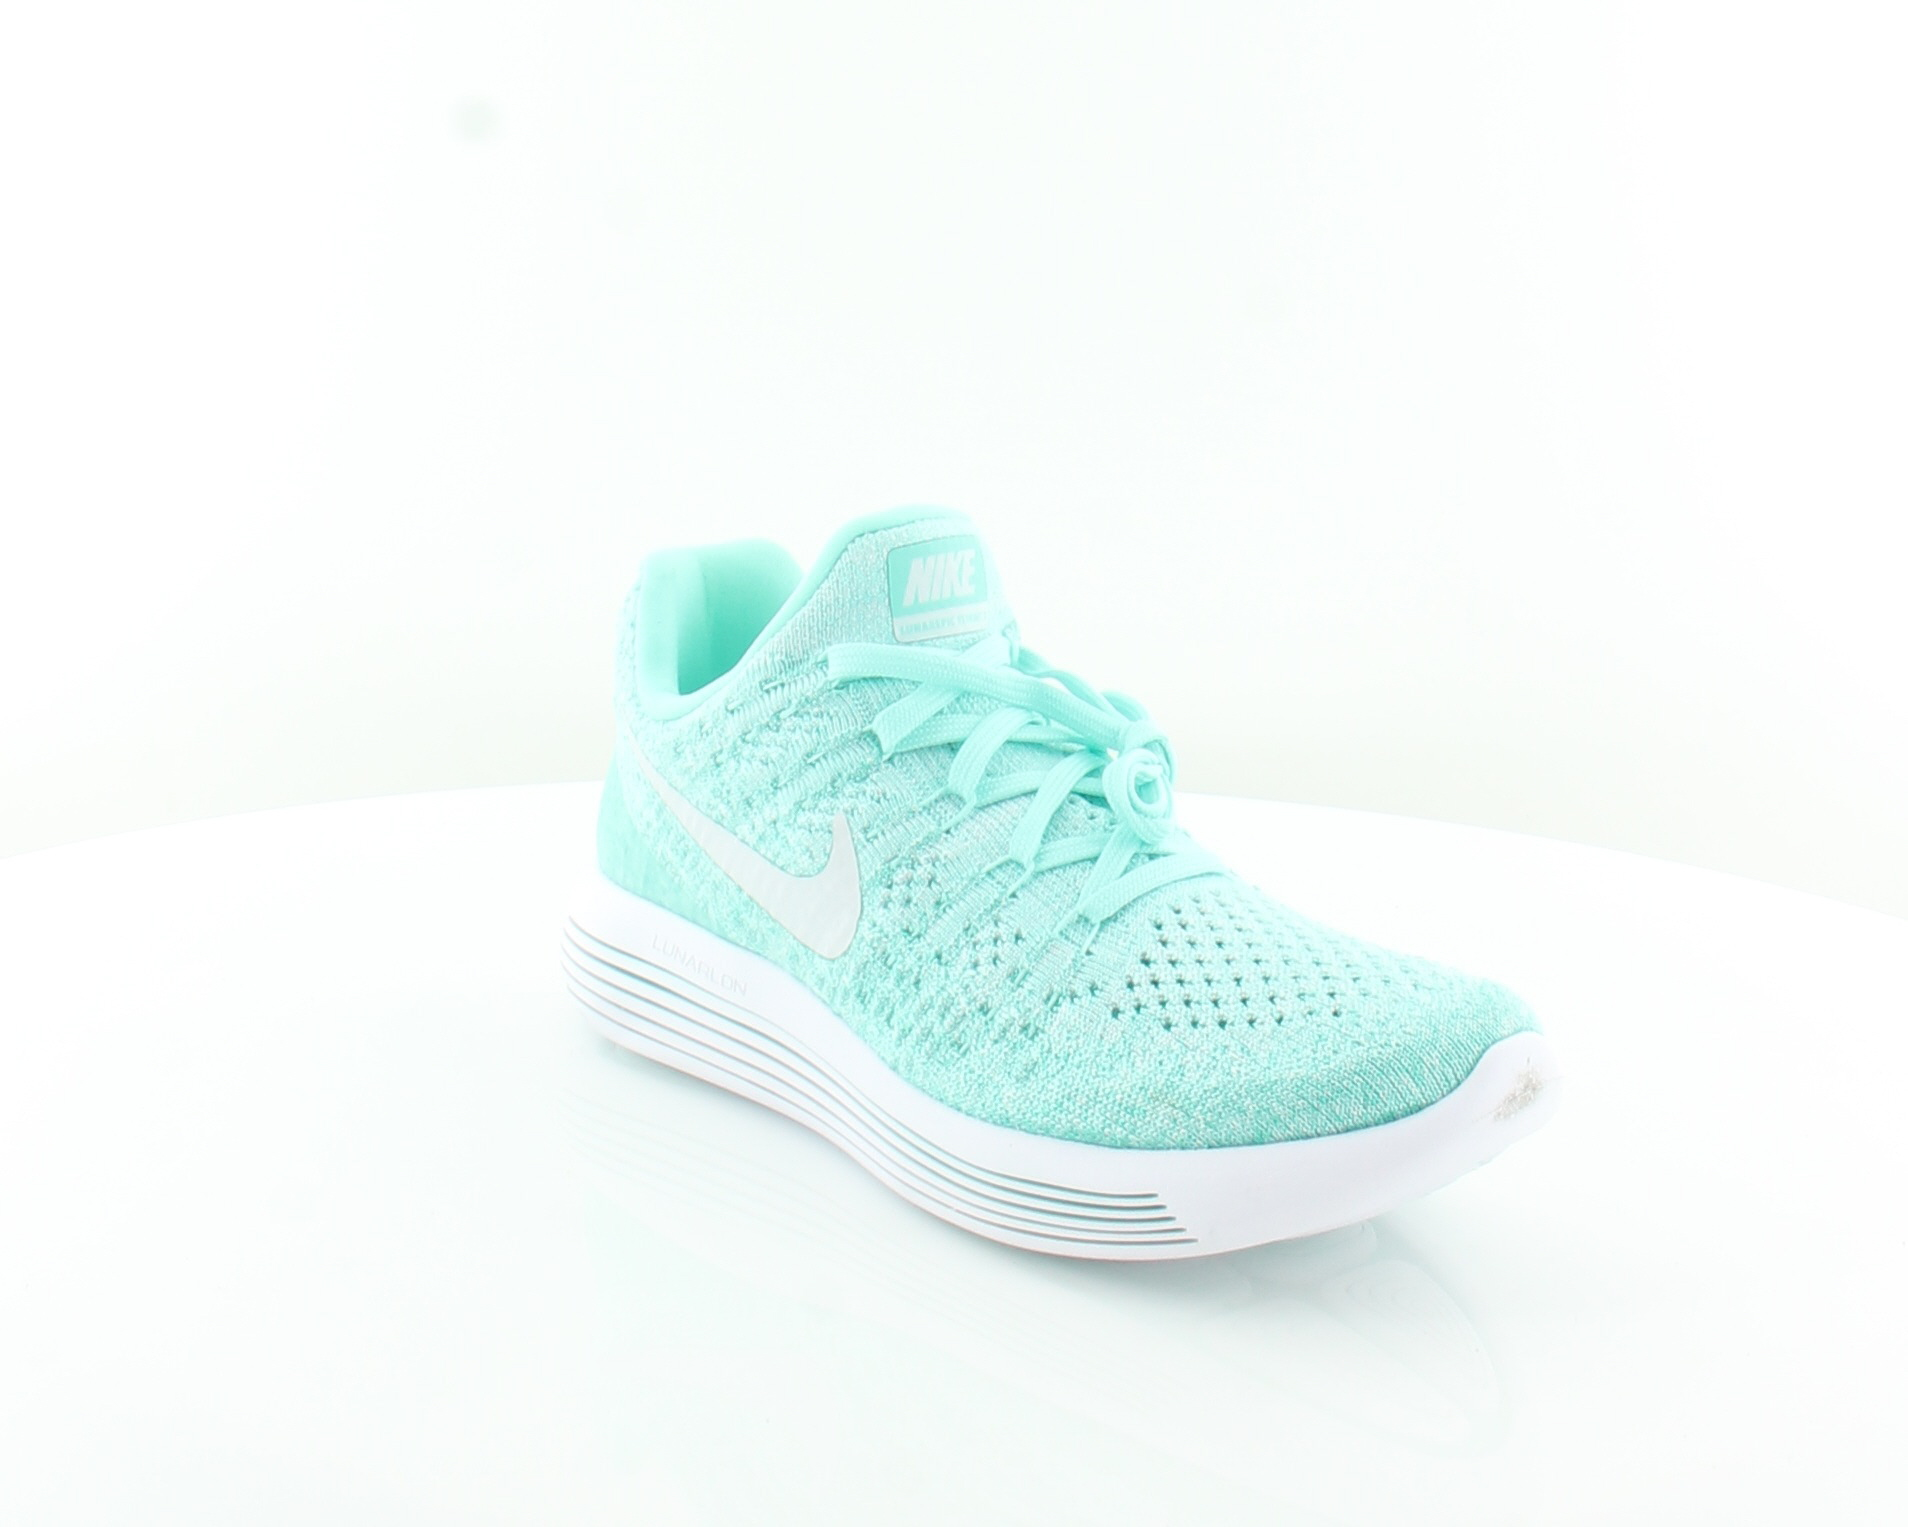 Nike New Lunarepic Low bluee bluee bluee Womens shoes Size 7.5 M Athletic MSRP  160 2c34be